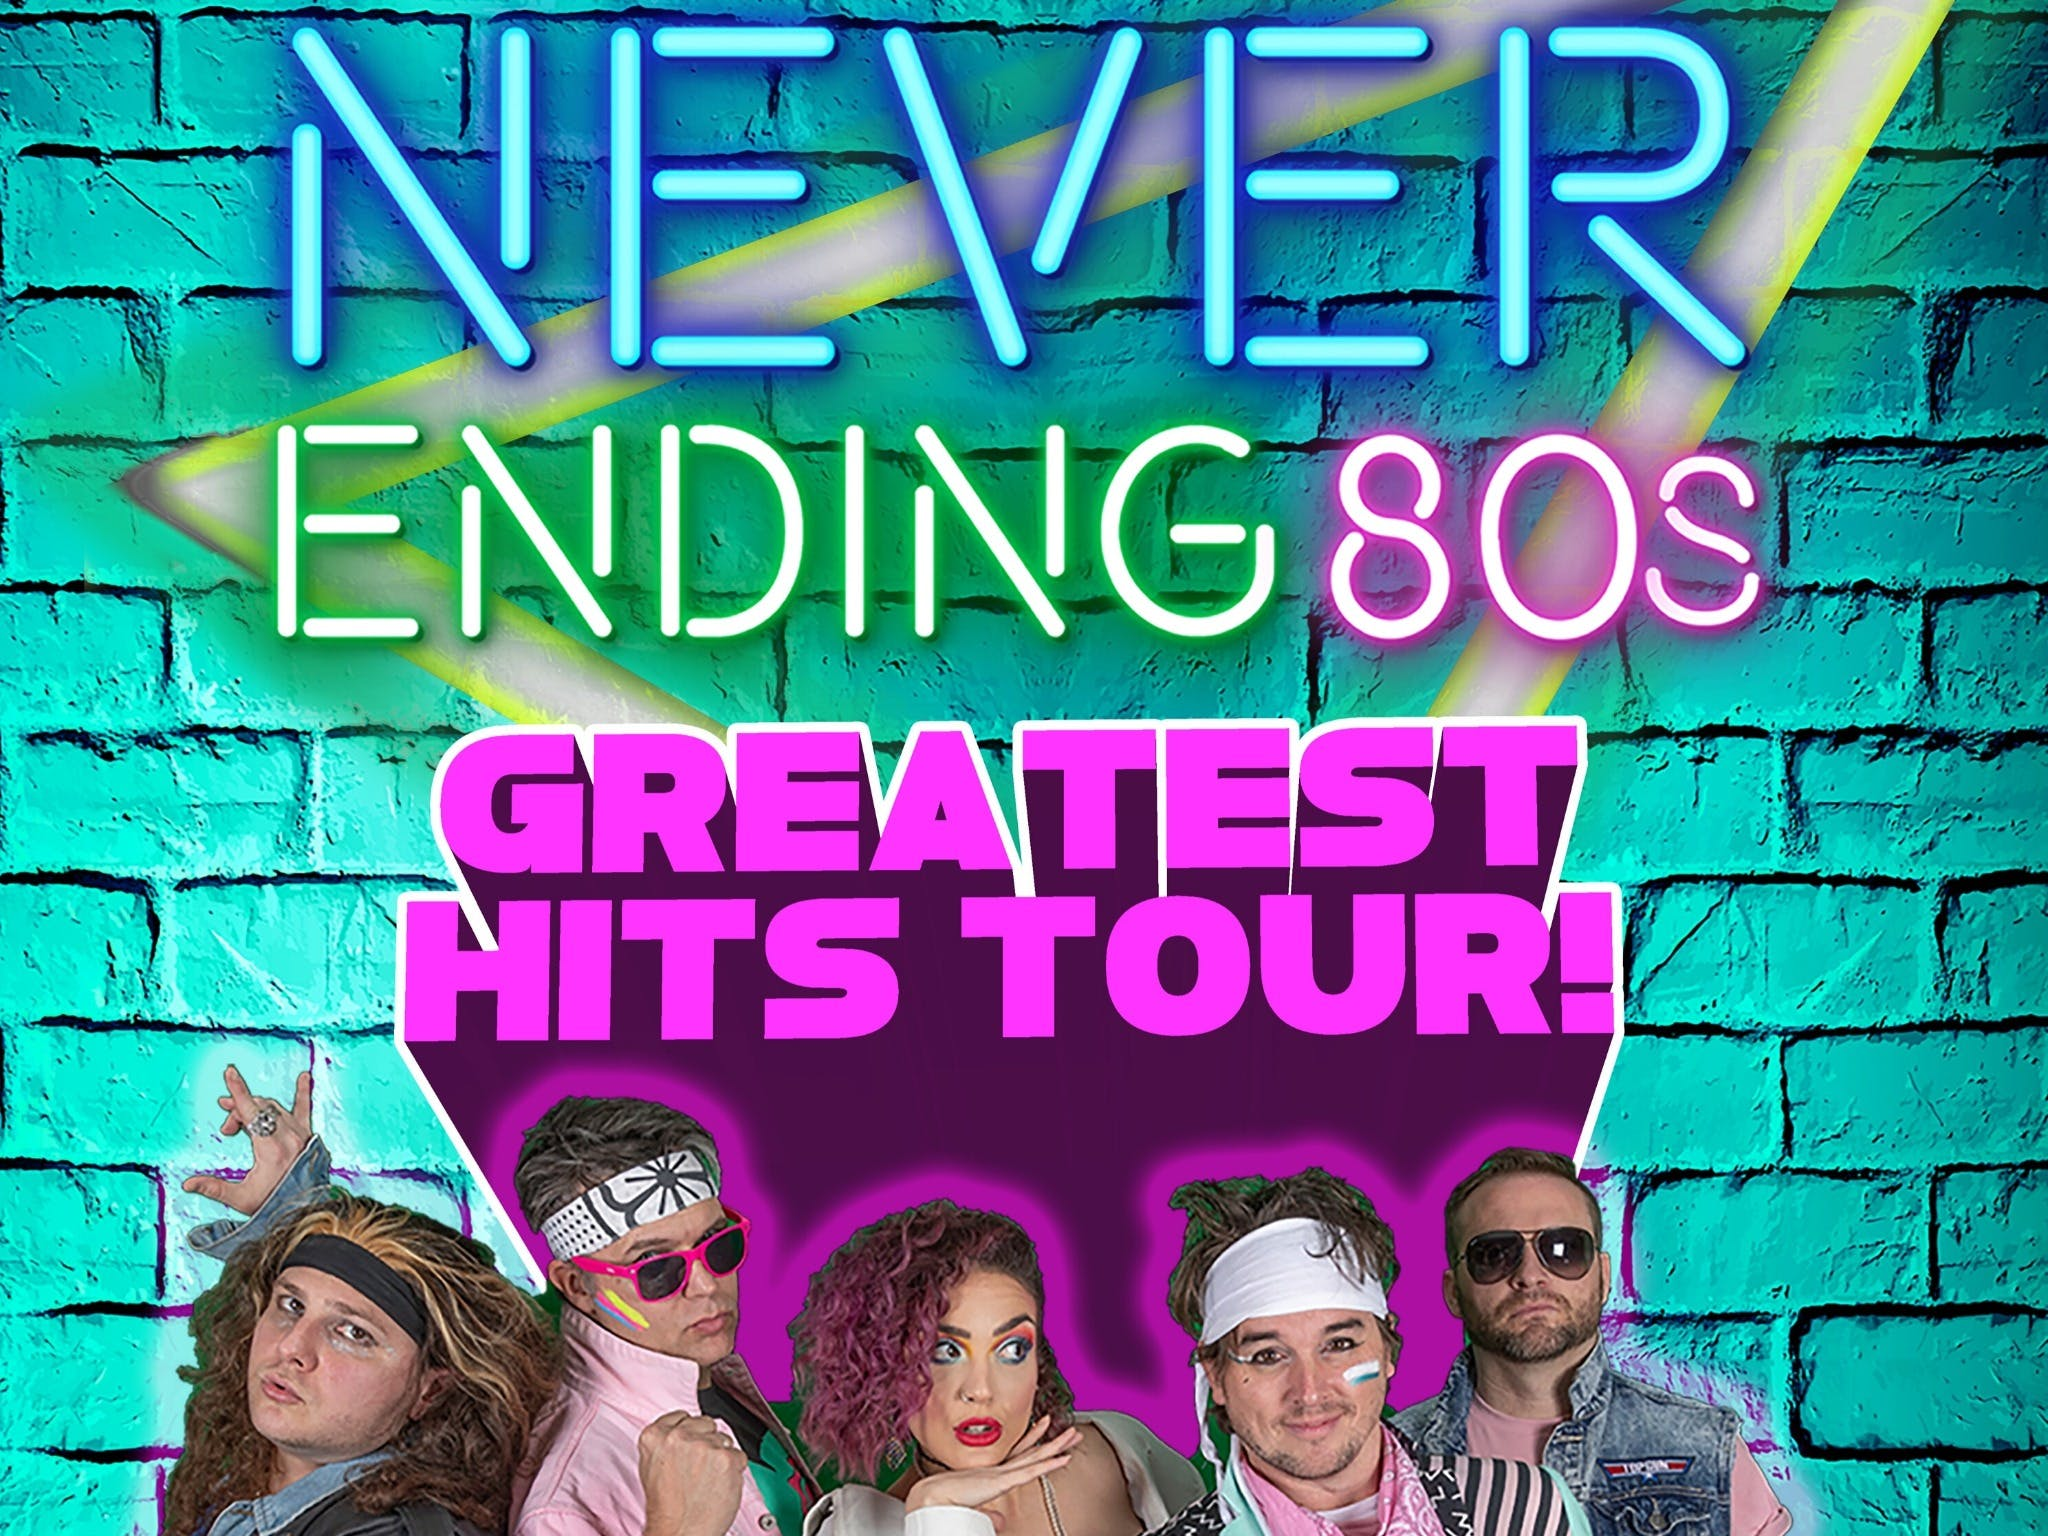 Never Ending 80s - The Greatest Hits Tour - Pubs Sydney